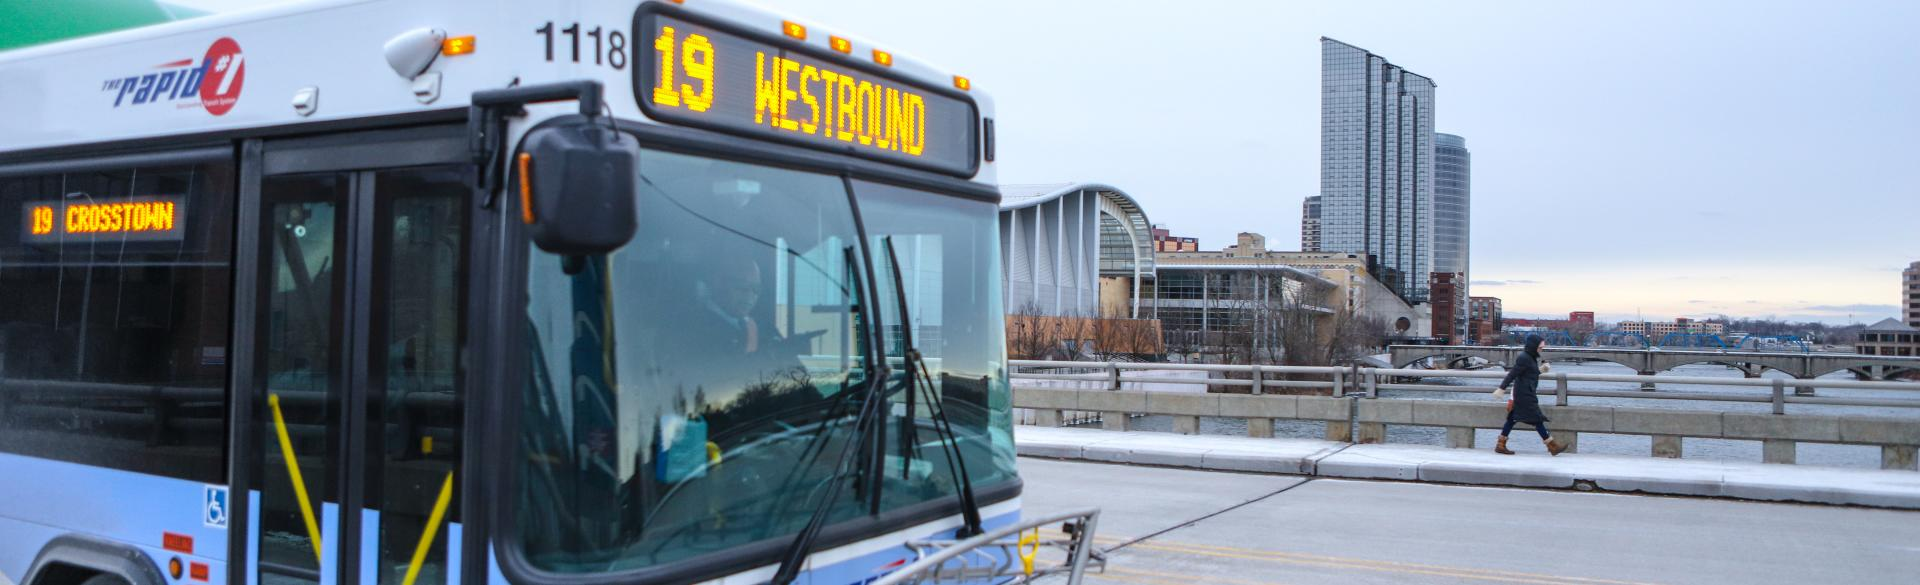 The Rapid Route 19 westbound bus